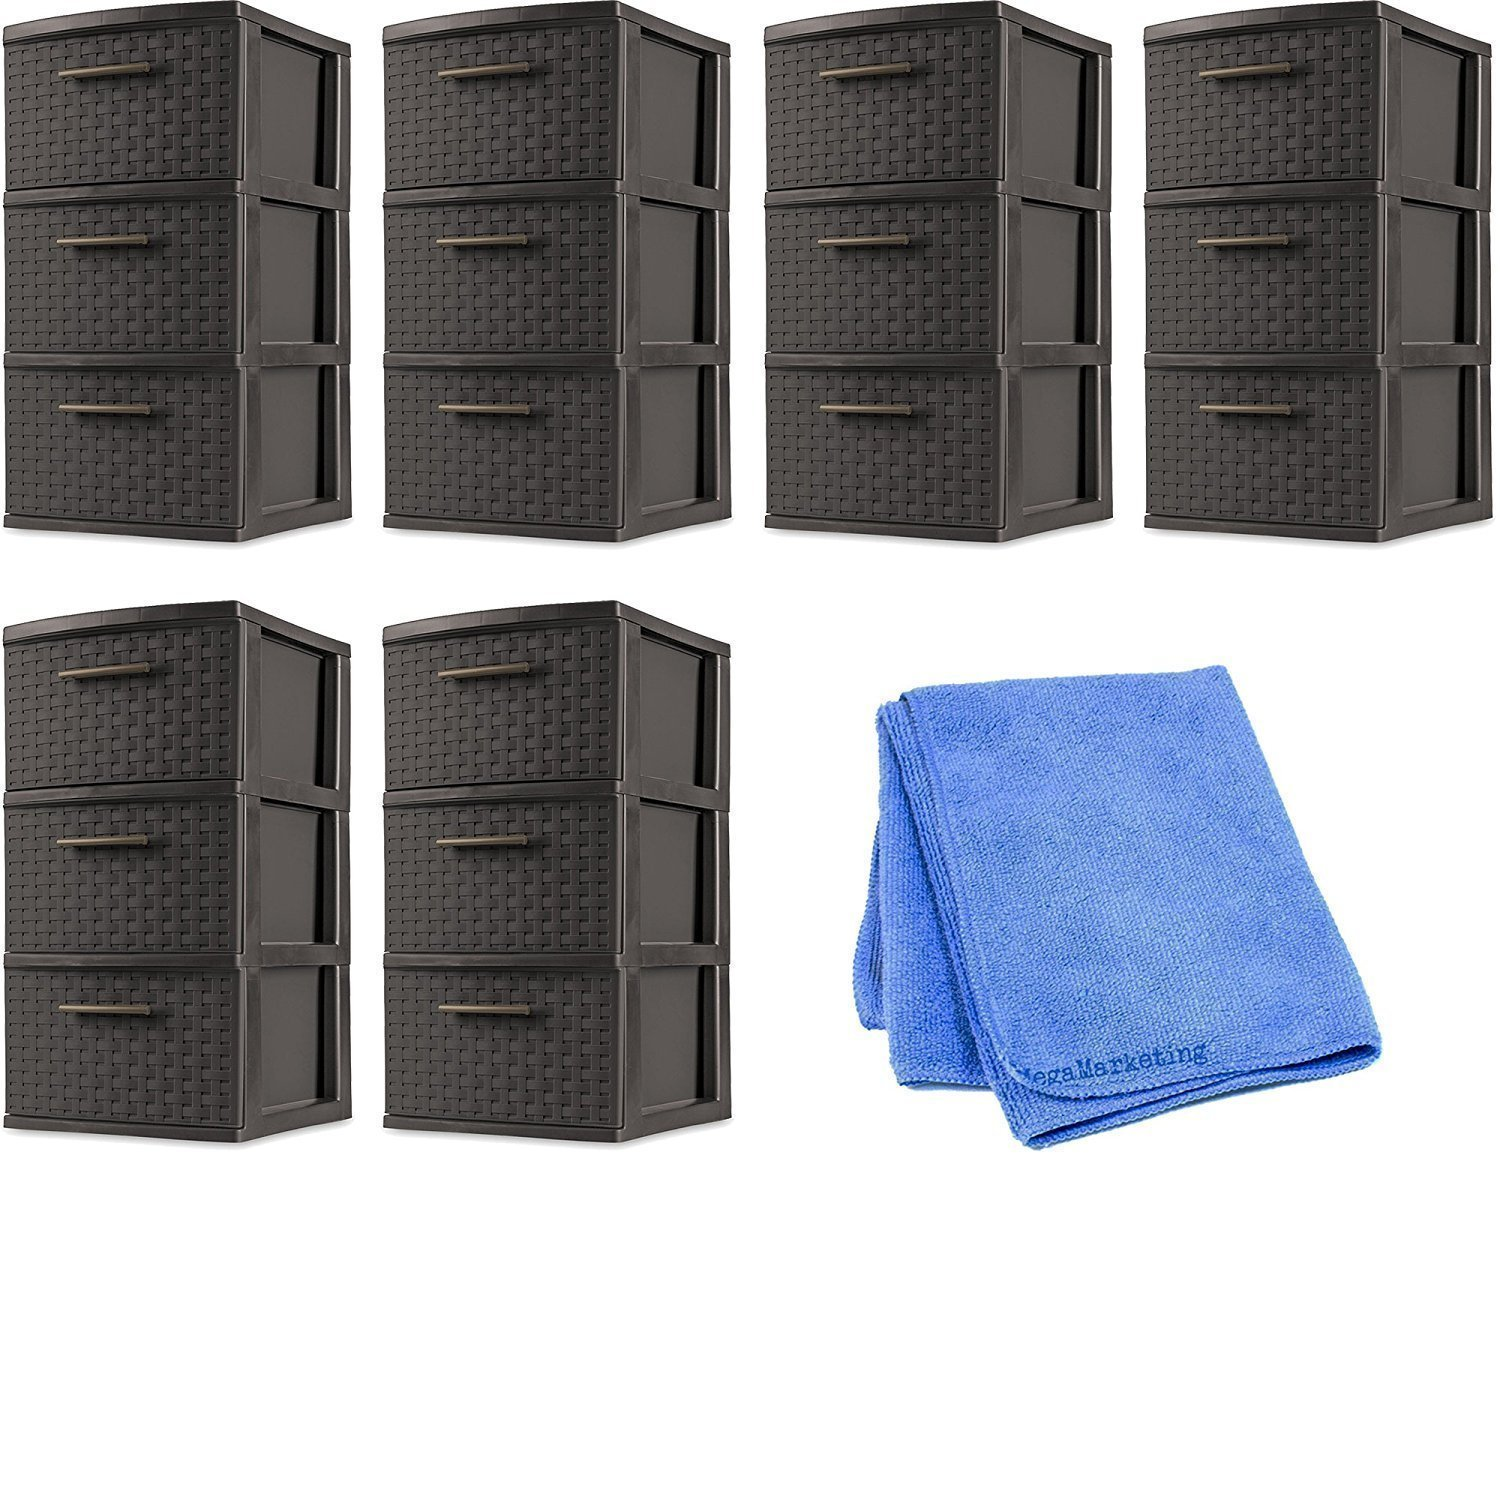 Sterilite 26306P02 Decorative 3-Drawer Storage Weave Tower, Espresso, Set of 6 with Dusting Cloth